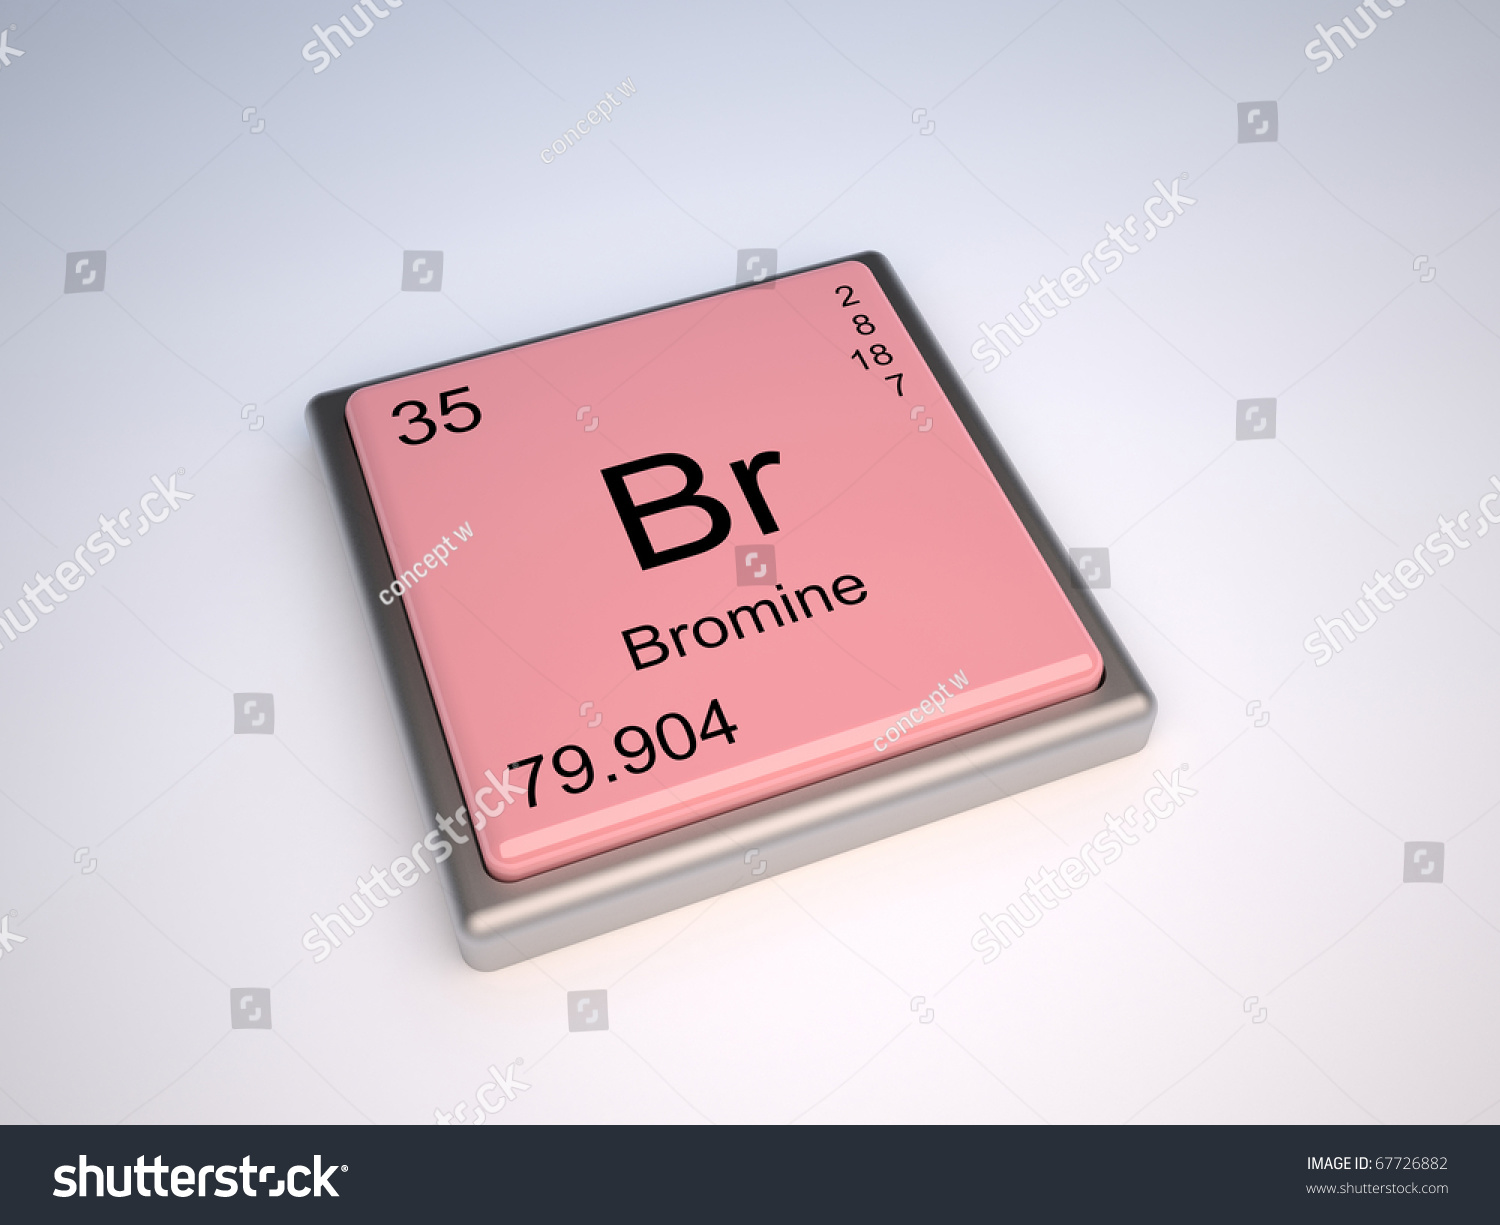 Bromine chemical element periodic table symbol stock illustration bromine chemical element of the periodic table with symbol br gamestrikefo Gallery